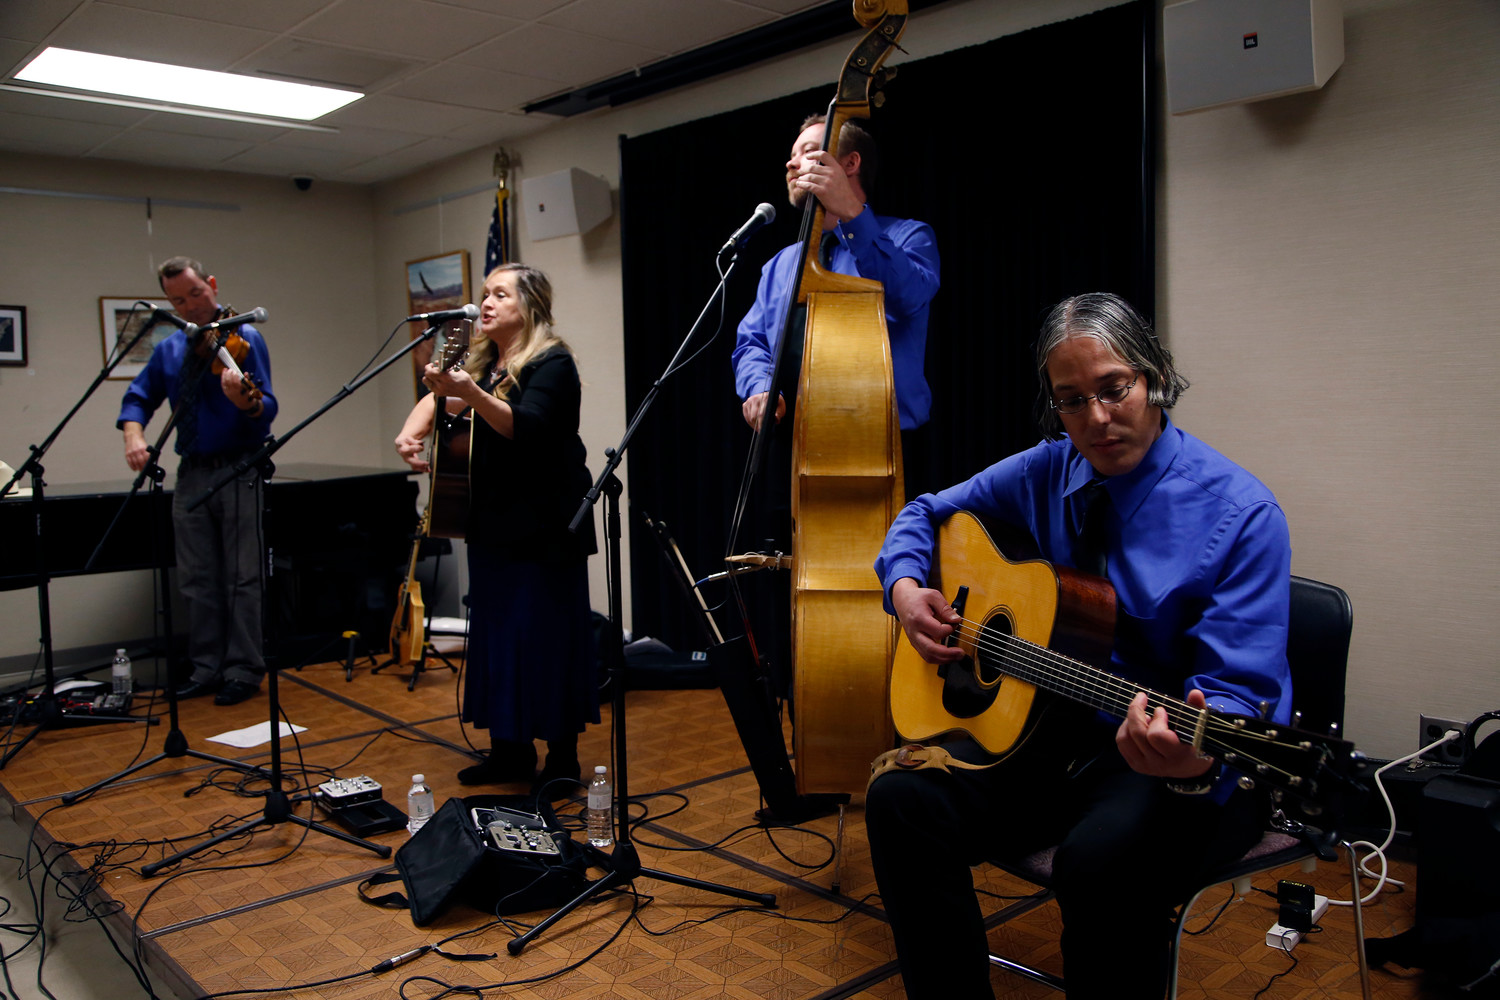 The award-winning bluegrass group Buddy Merriam & Back Roads played a medley of their hits at the East Meadow Public Library last month as part of the library's ongoing concert series.